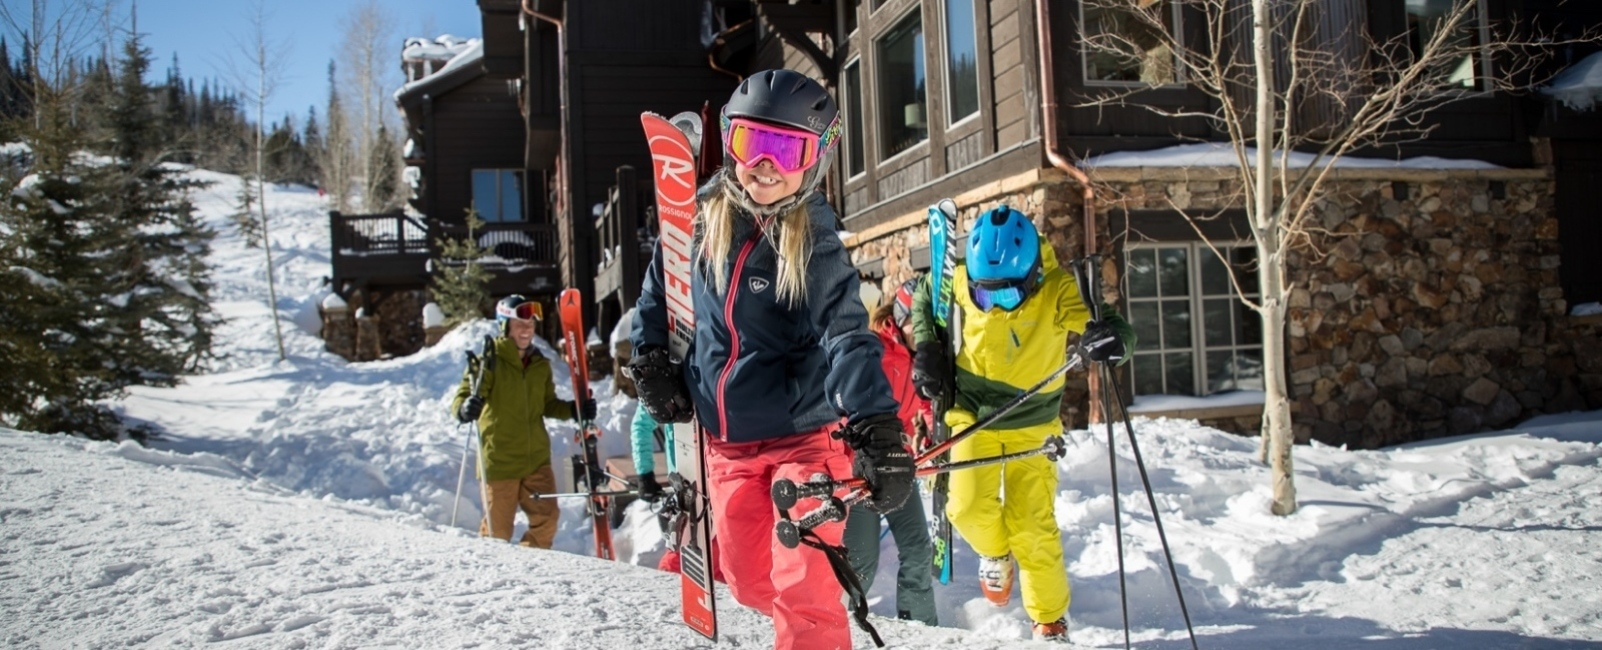 Not all Ski-In/Ski-Out Lodging is Created Equal